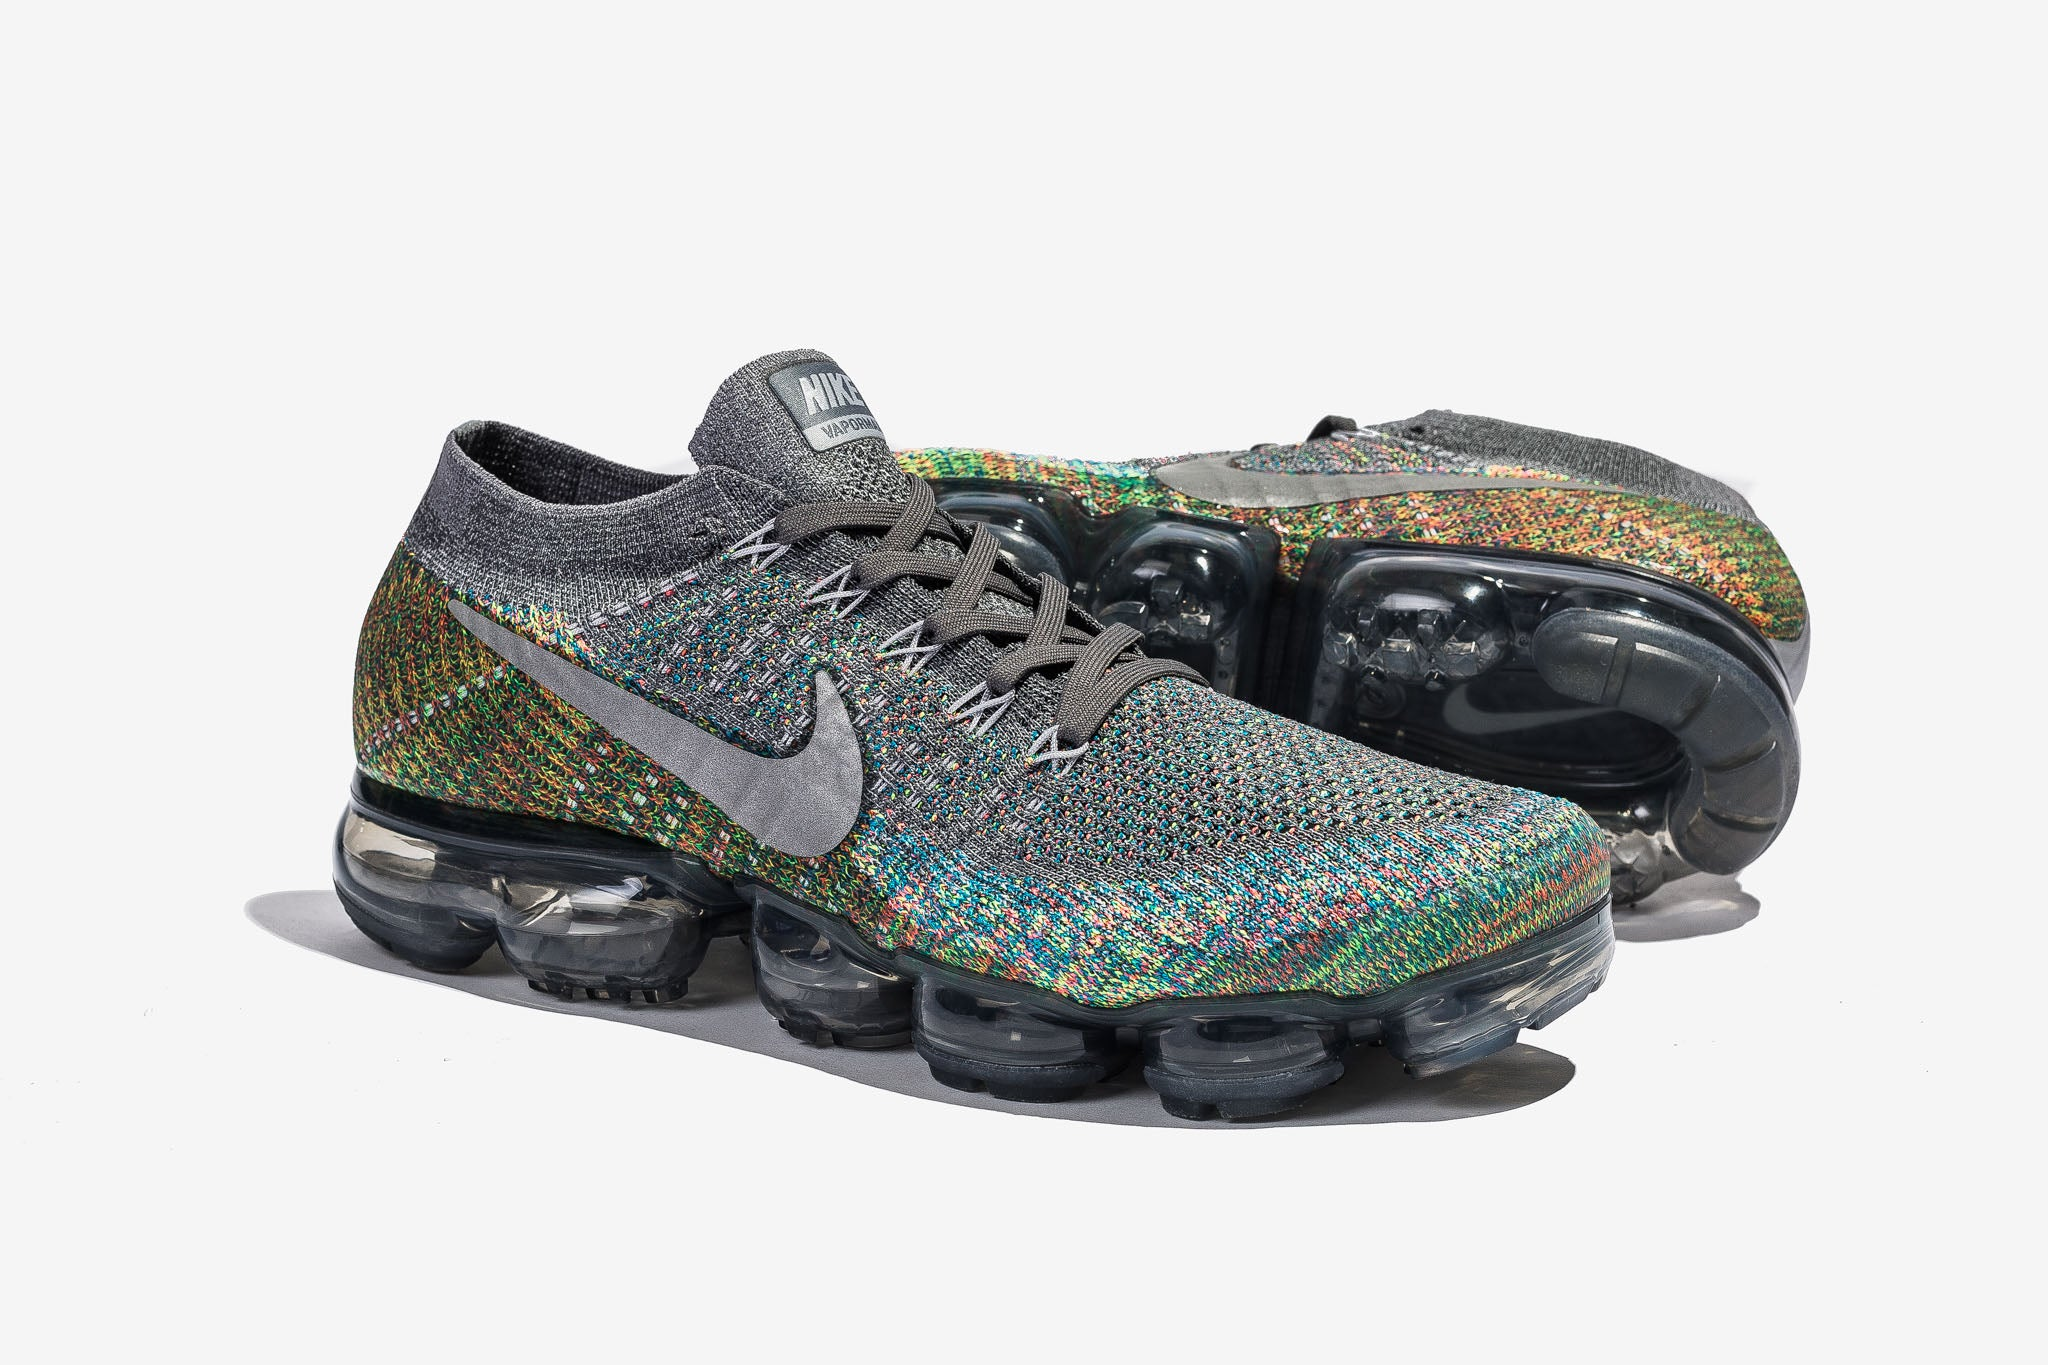 The Nike Air VaporMax Flyknit